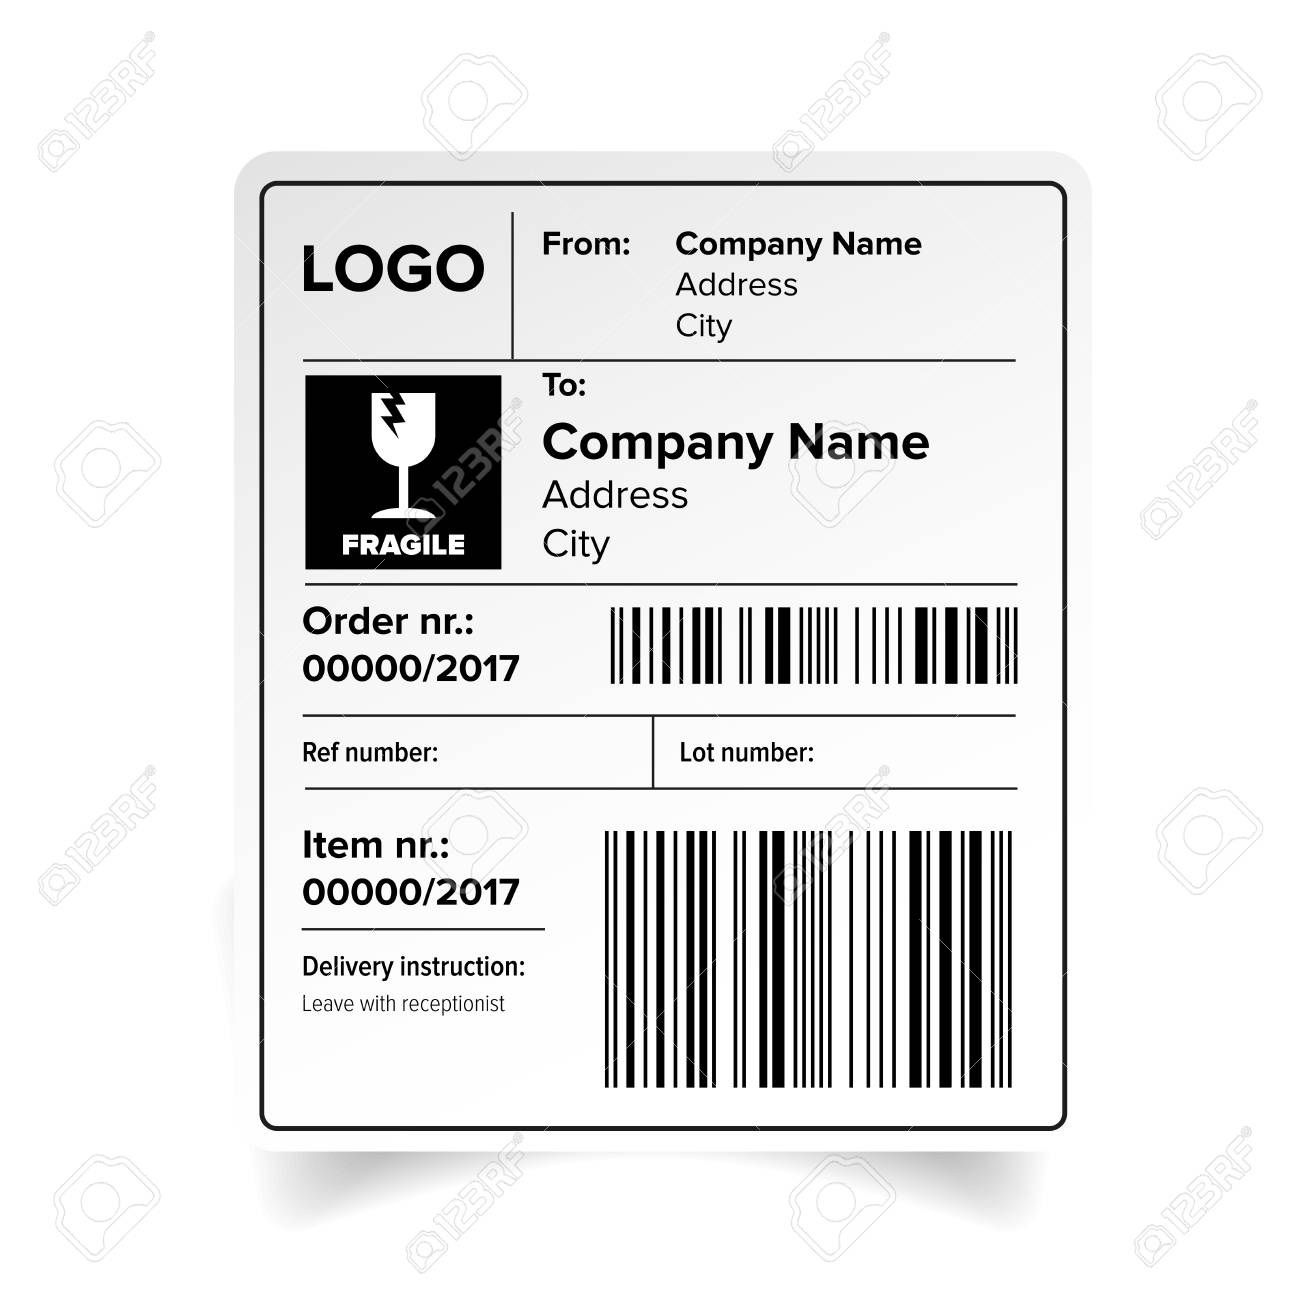 005 Amazing Free Shipping Label Format Highest Quality Full